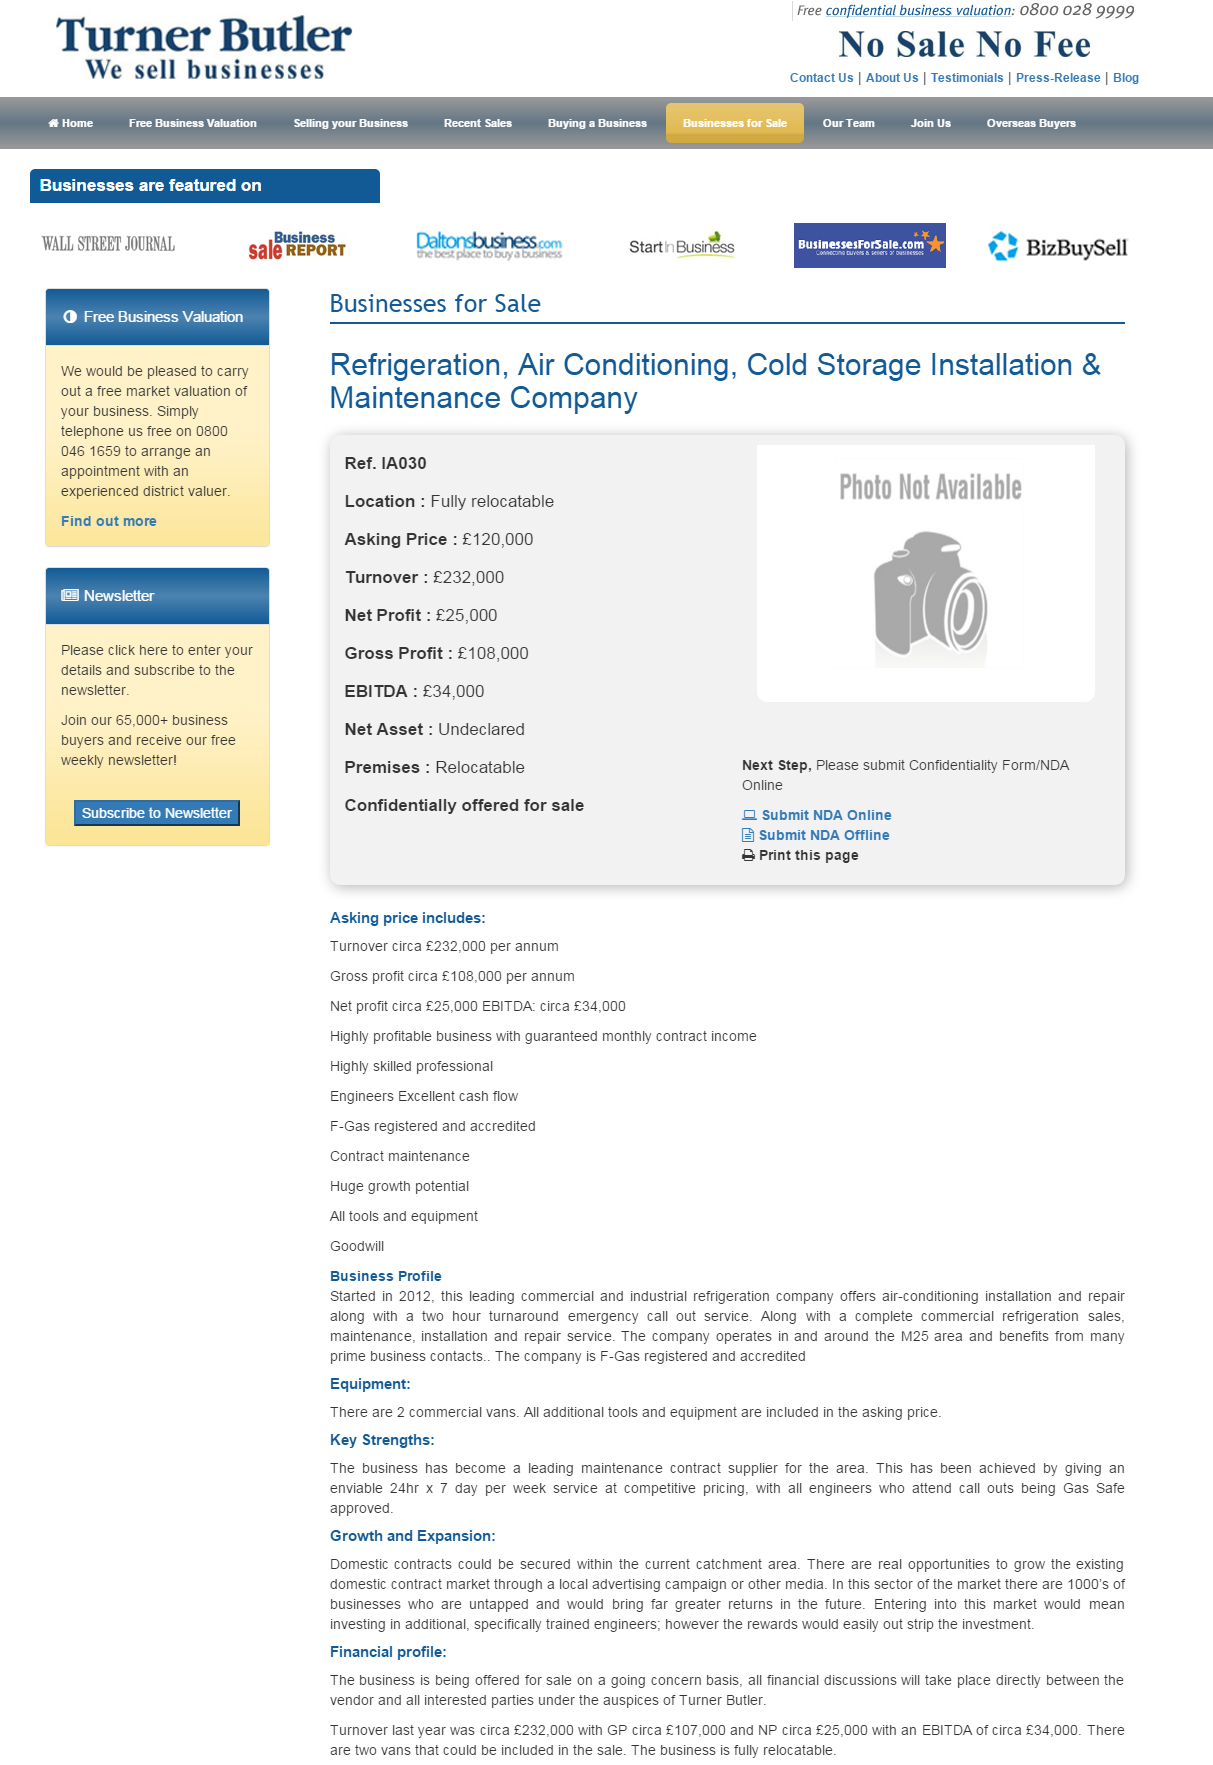 Business for sale Refrigeration, Air Conditioning, Cold